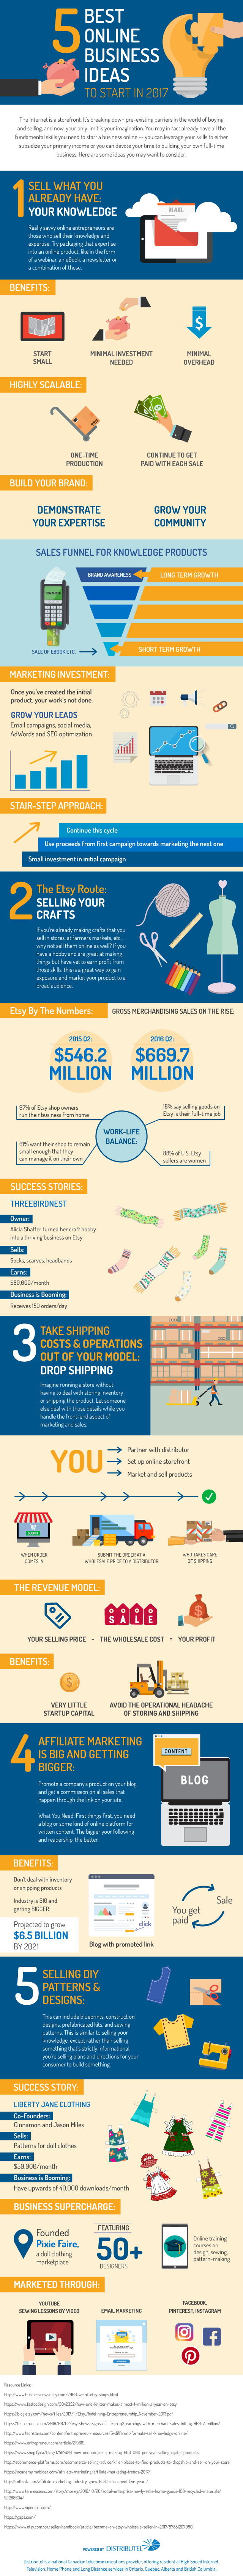 5 Best Online Business Ideas to Start Today Infographic by Distributel